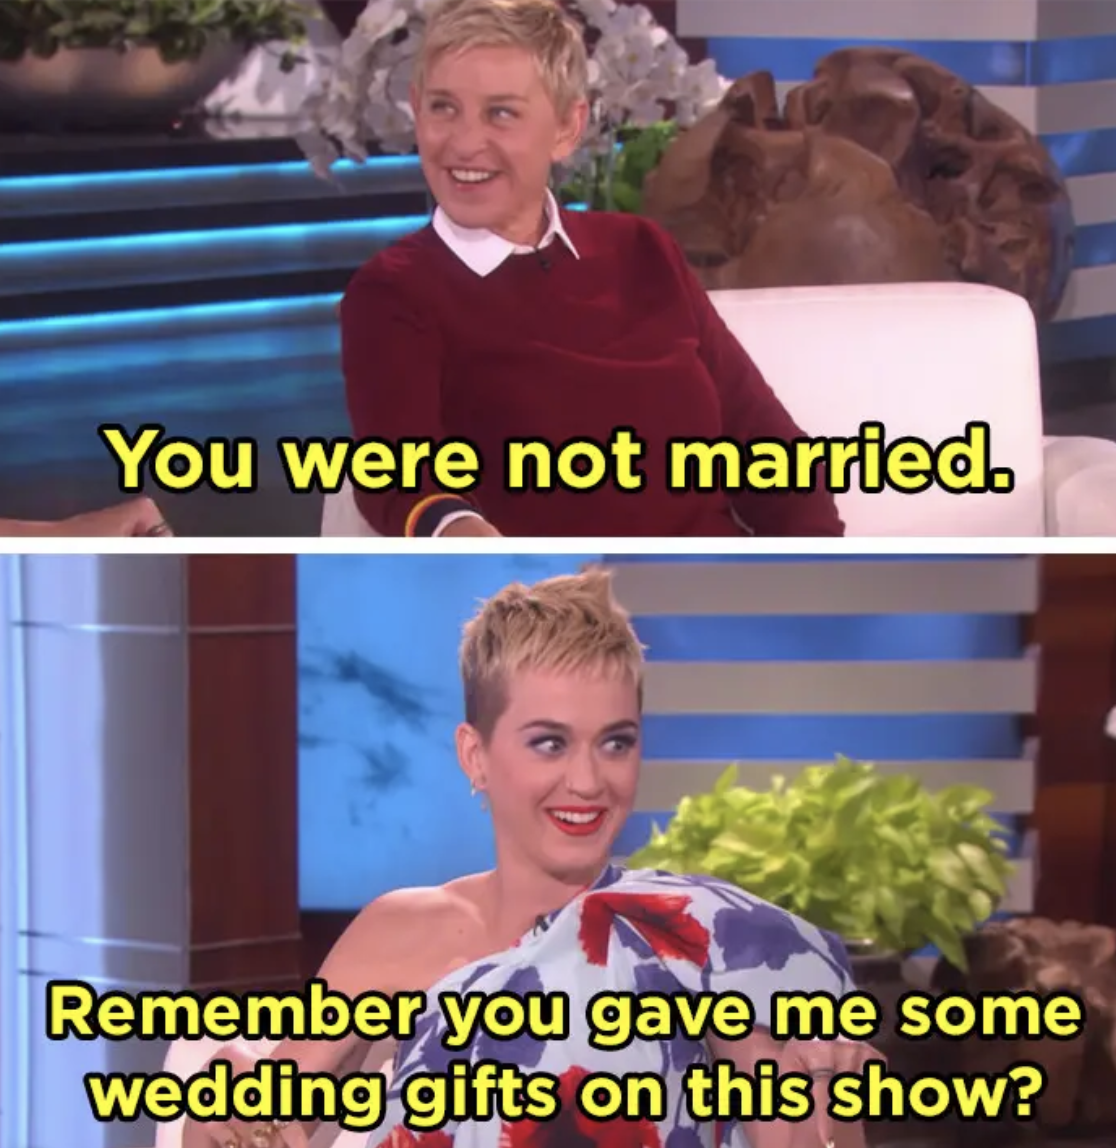 Katy Perry reminds Ellen she gave her wedding gifts